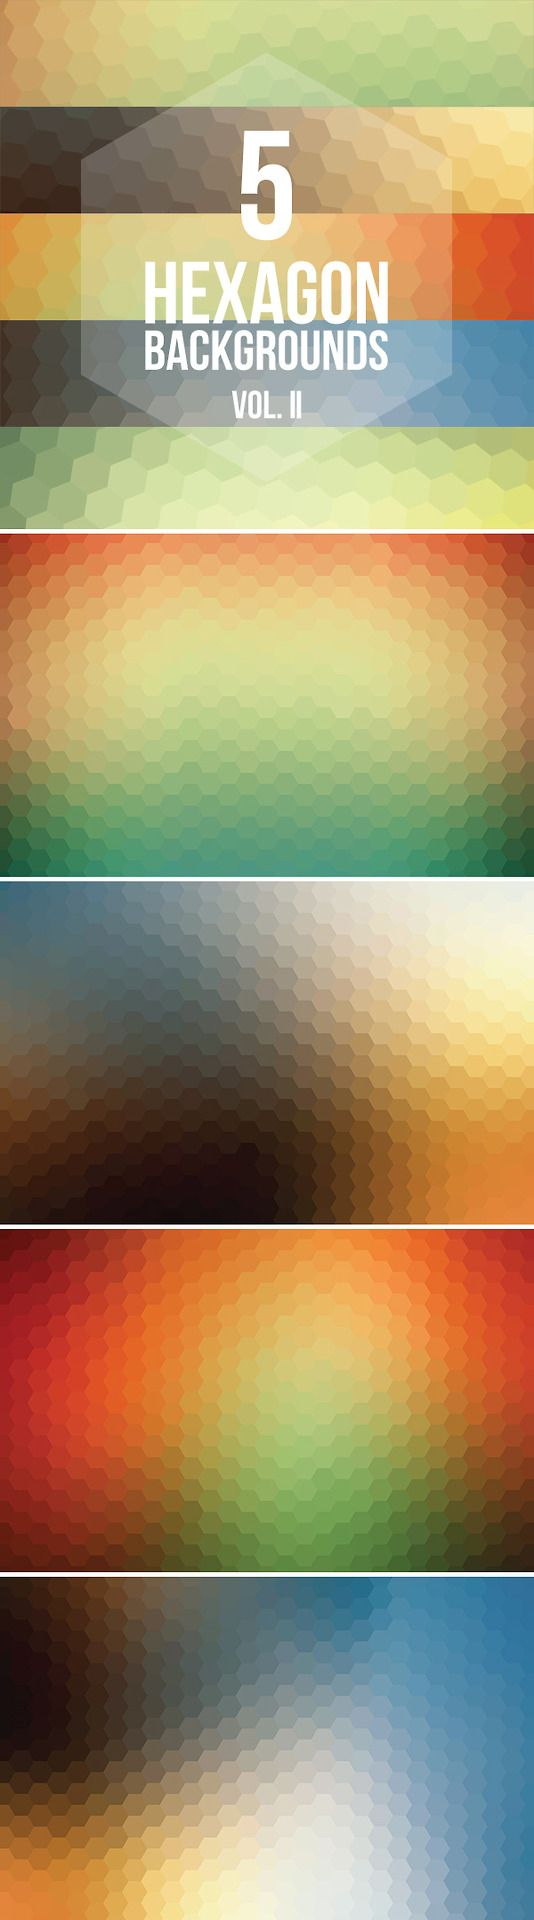 5 Free Hexagon Backgrounds Vol. II